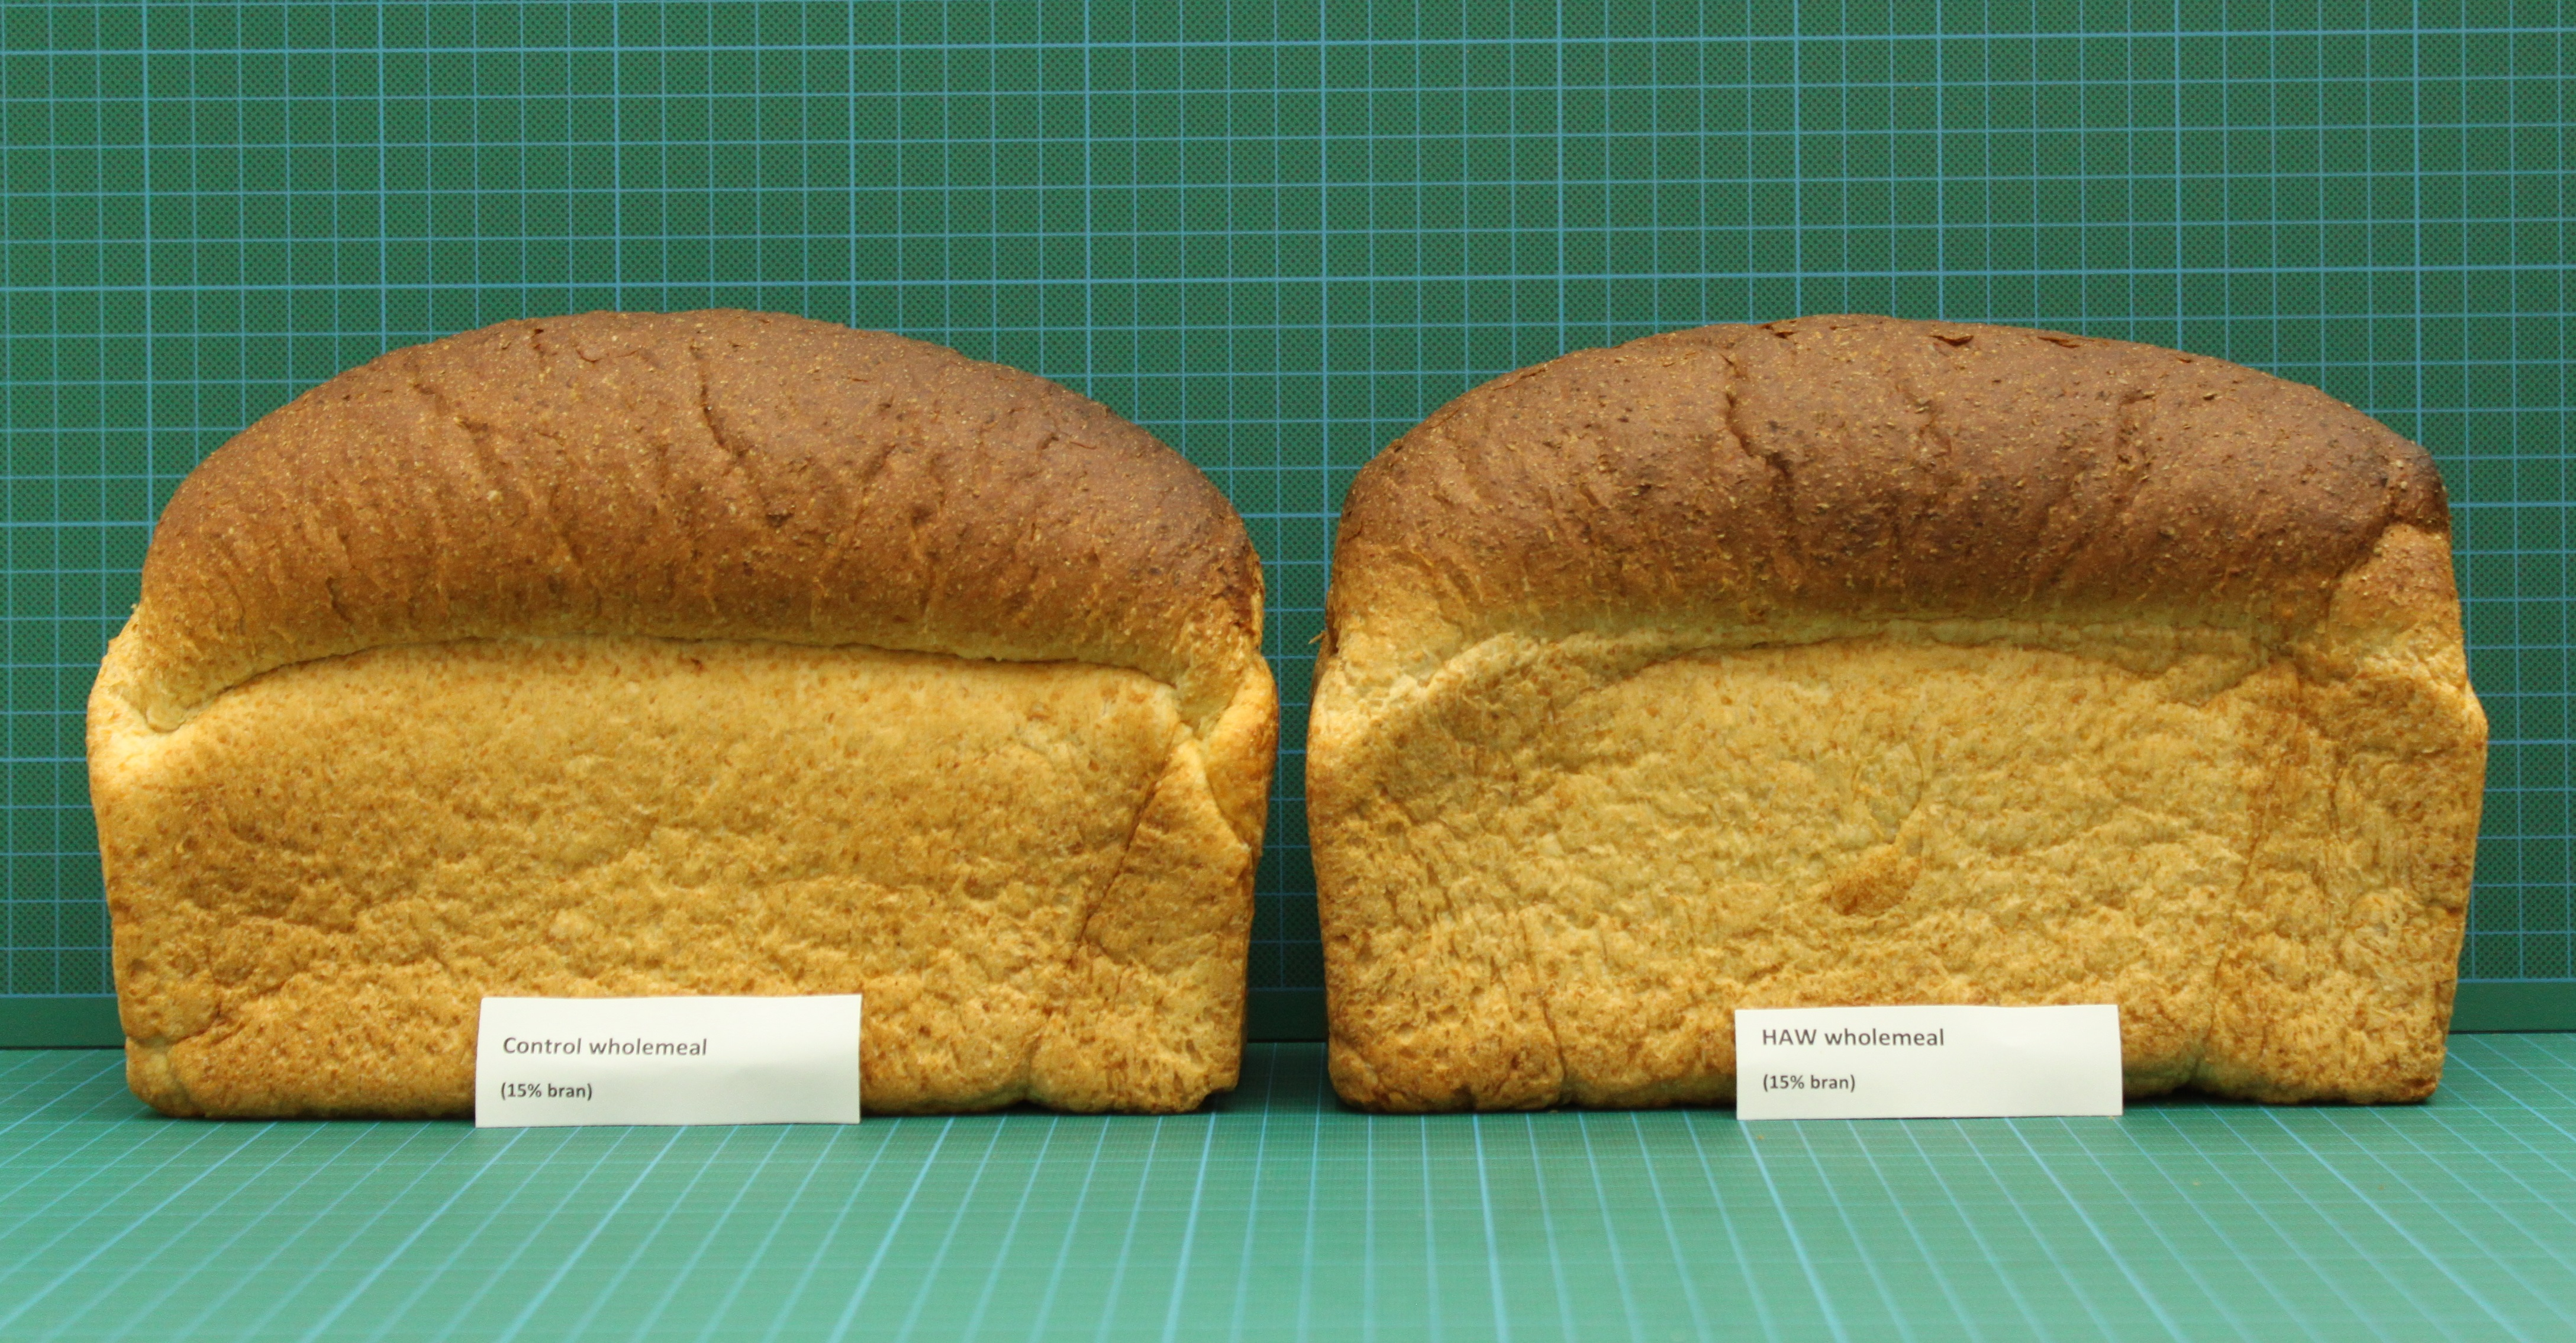 Two loaves of bread: one baked with high-amylose wheat flour and one baked with standard wheat flour. They look very similar